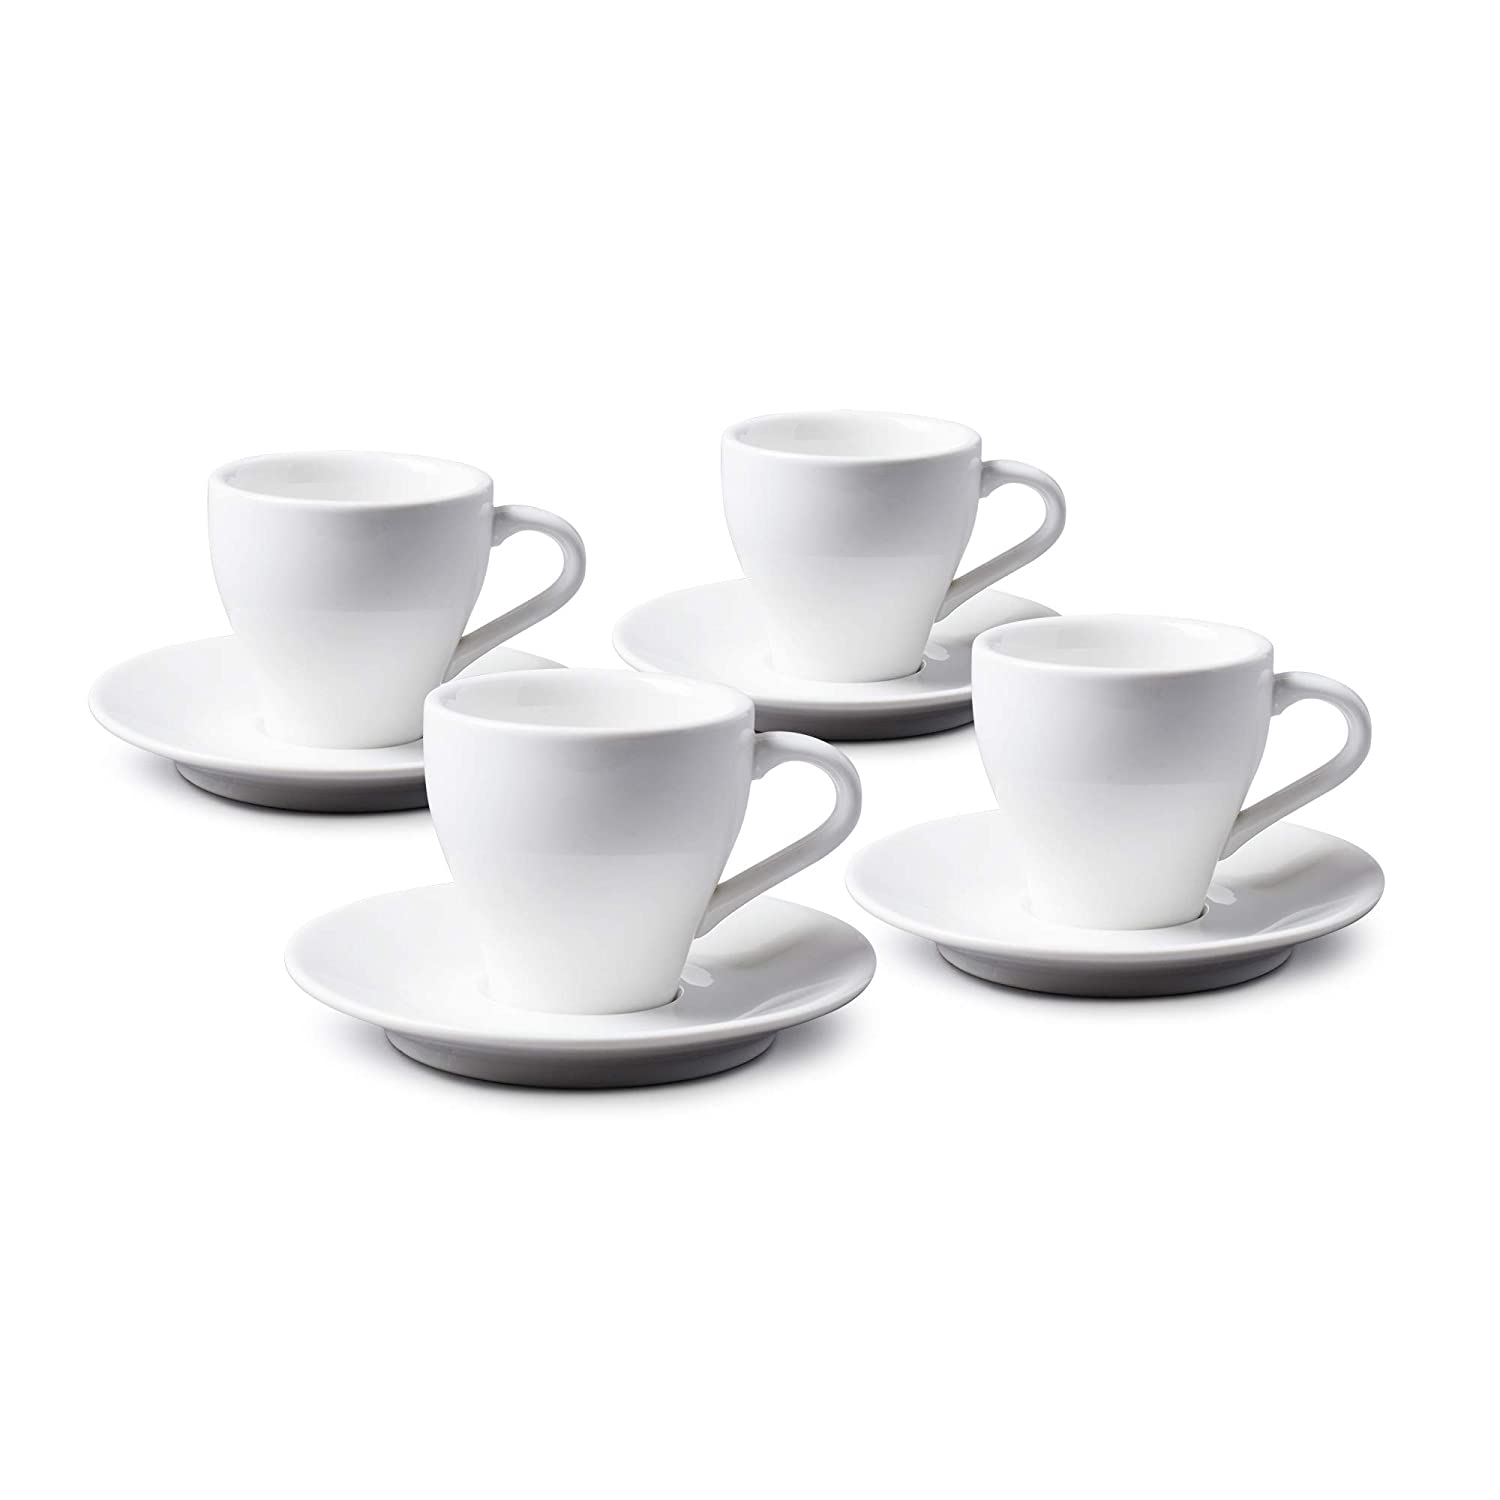 WM Bartleet /& Sons 1750 TSET88 Traditional Set of 4 Porcelain Espresso//Doppio Cup and Saucer 80ml White